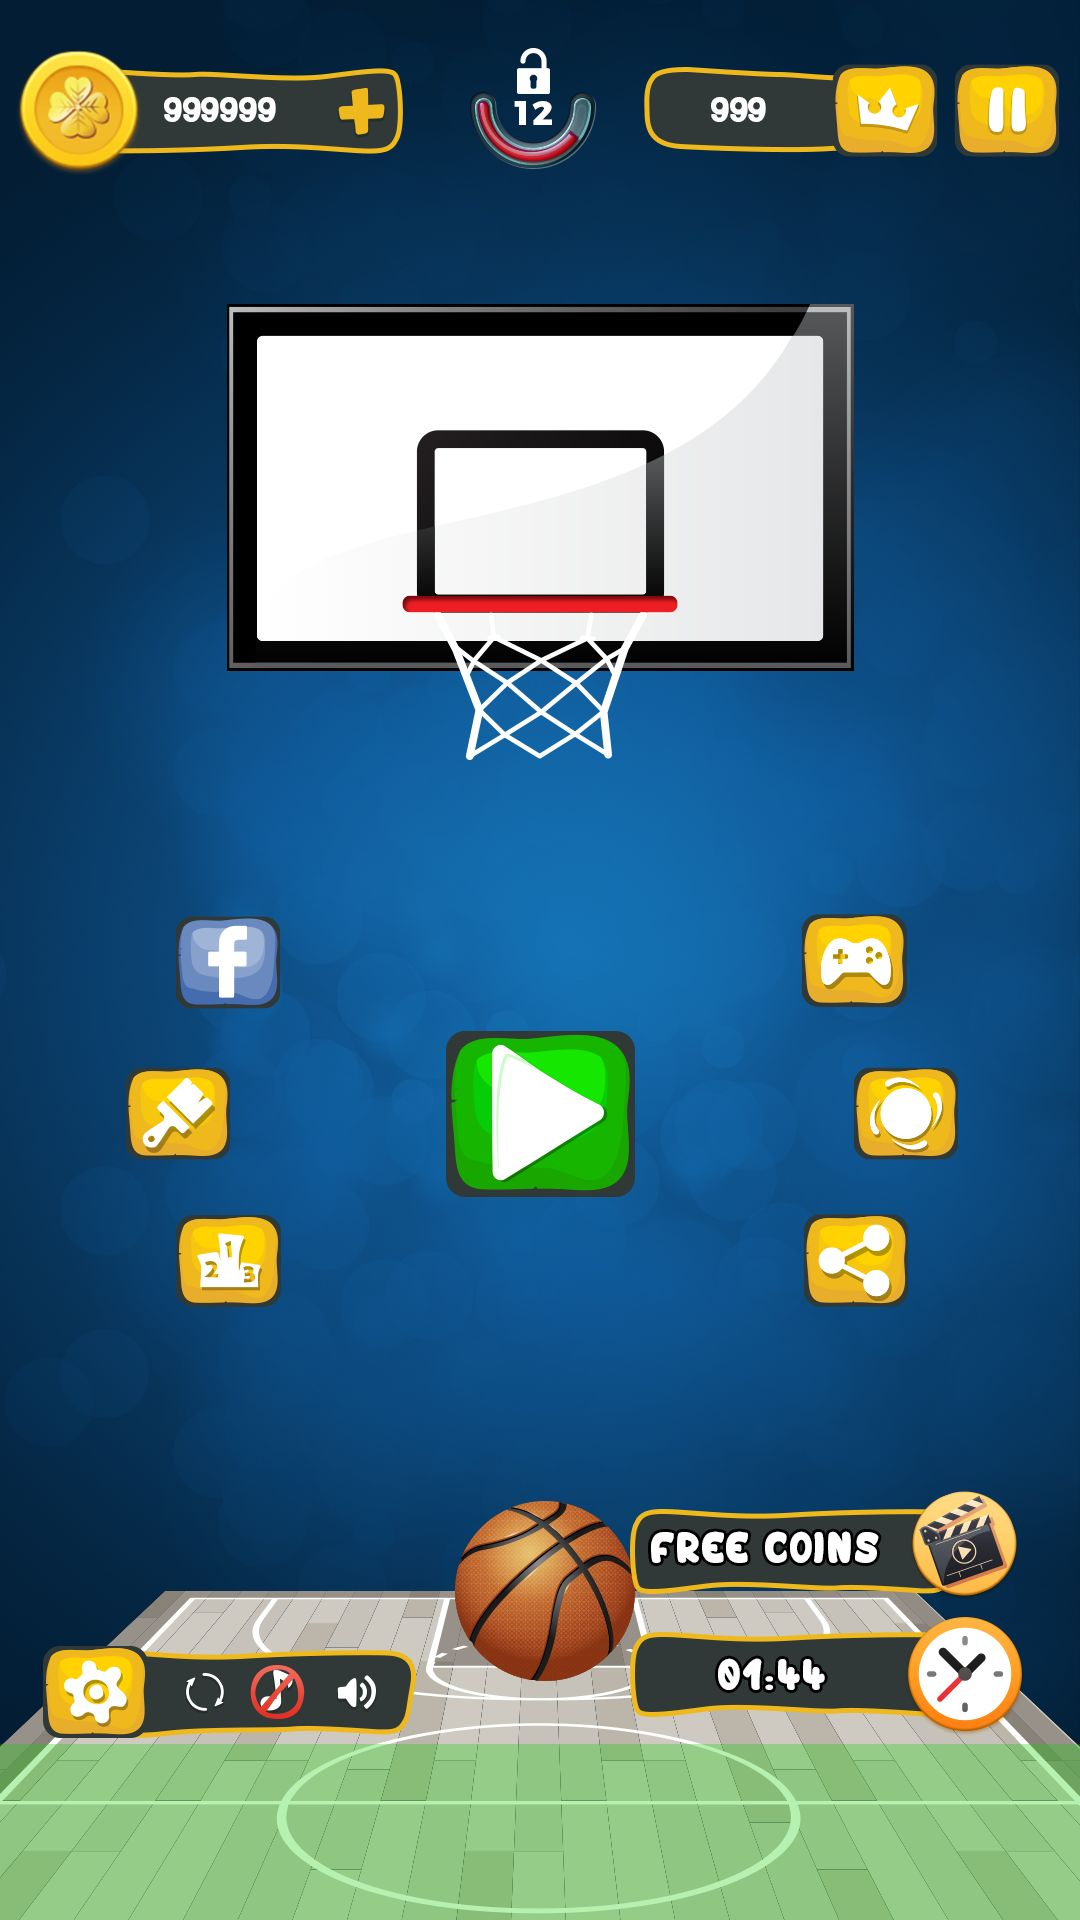 Basket Ball Game Skin - Pack 2 Screenshot 2